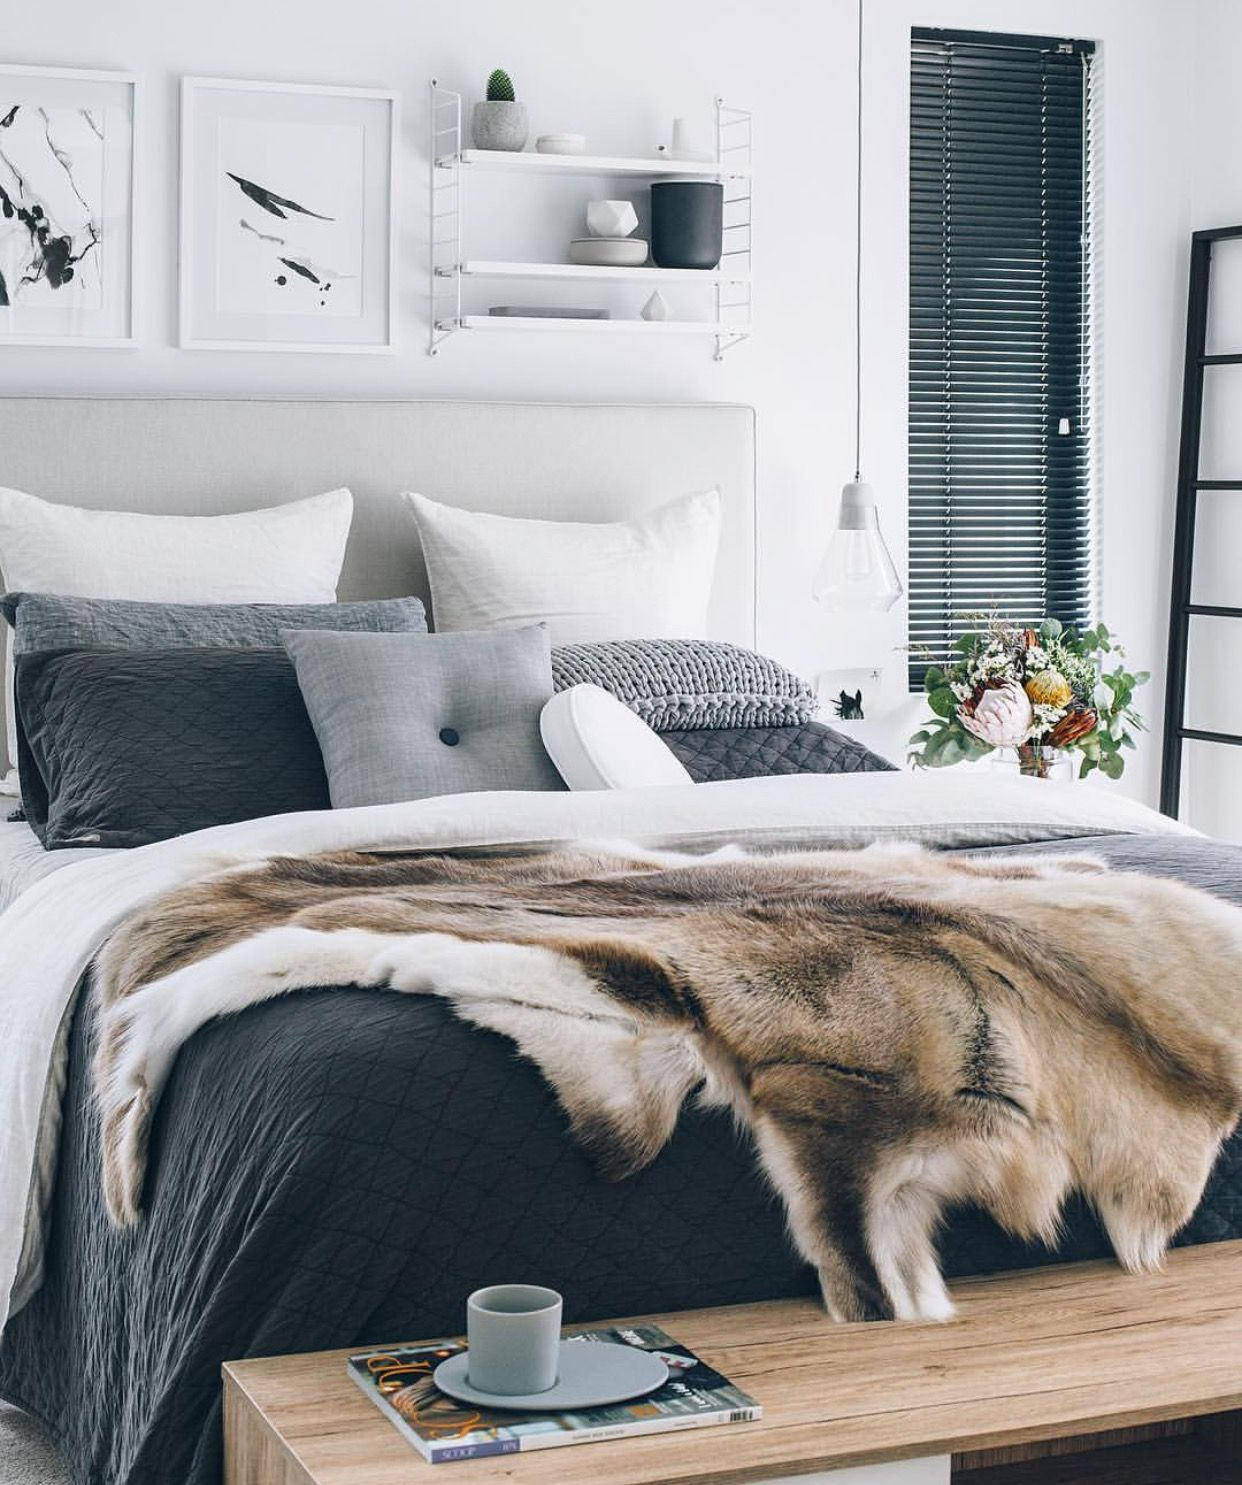 Master bedroom grey and white  Make Your Bedroom ucSizzleud with Unique Headboard Designs  Remodel